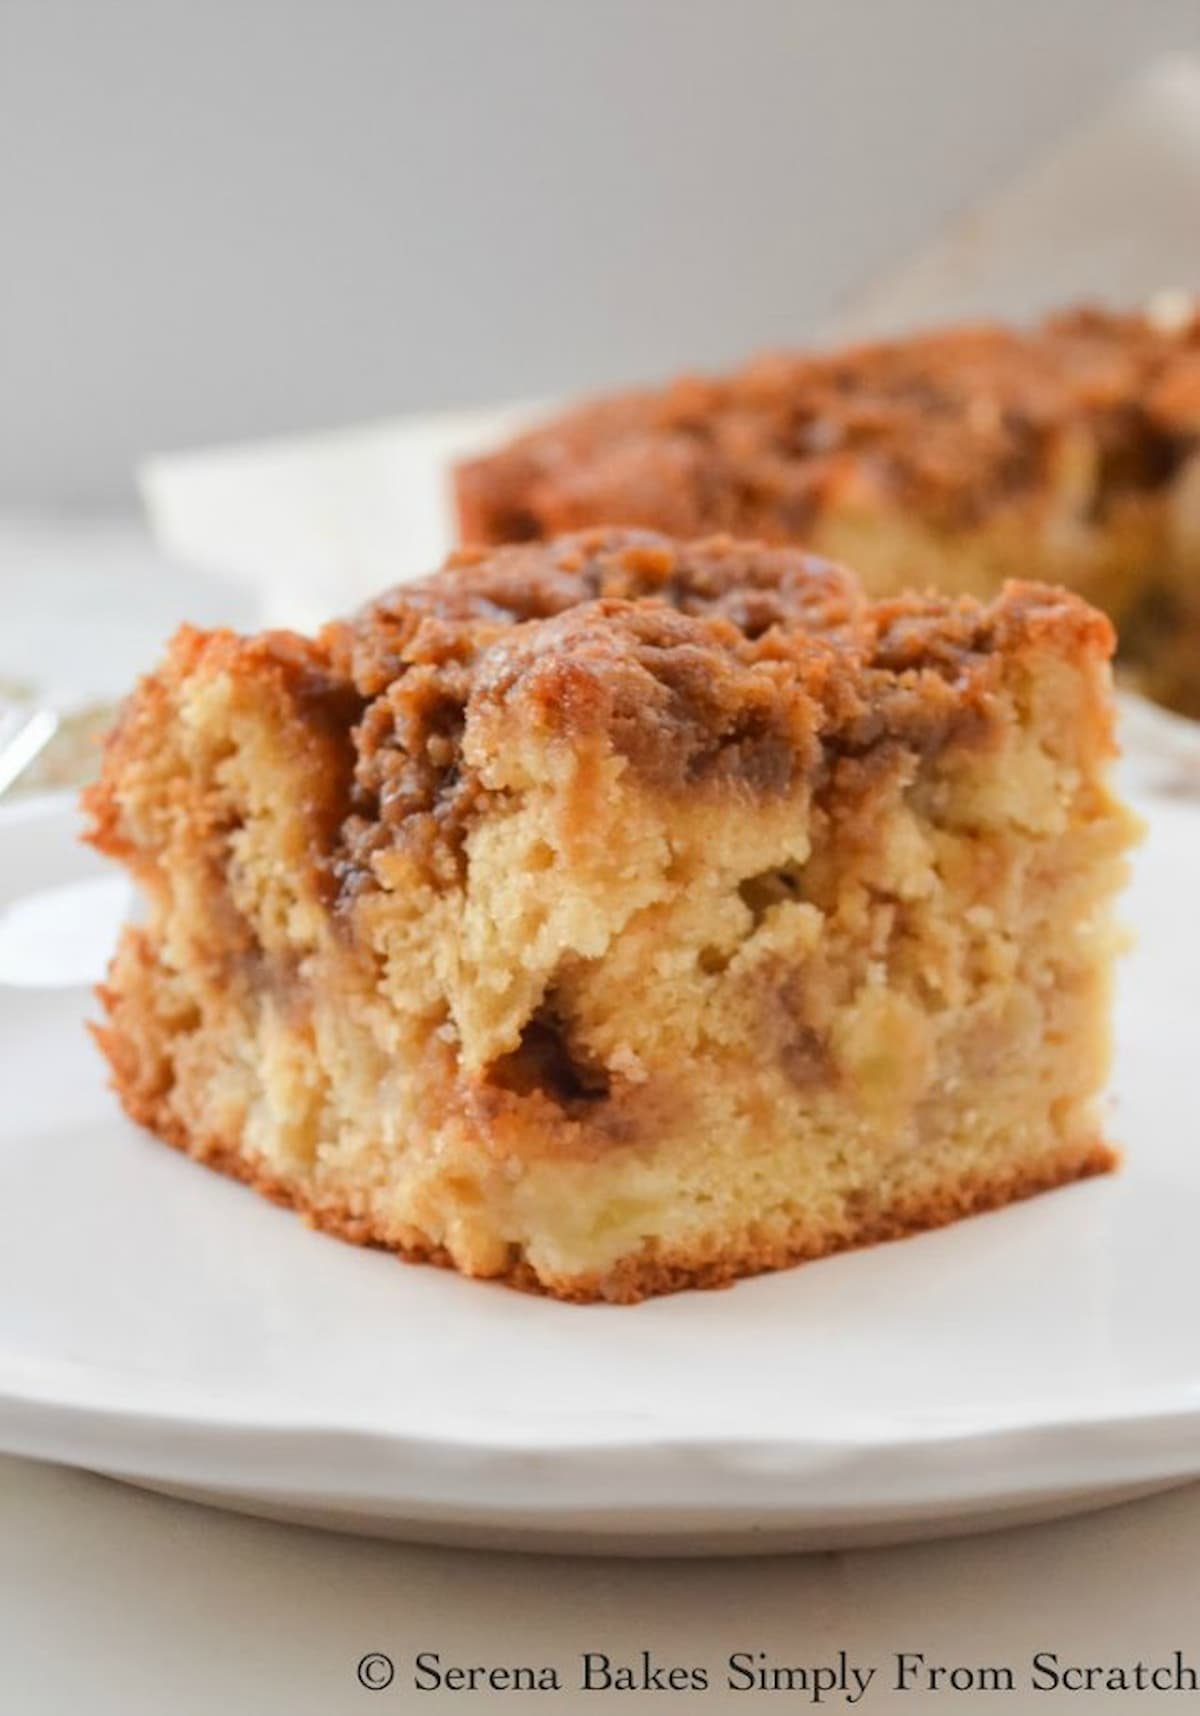 Apple Coffee Cake with a Brown Sugar Cinnamon swirl and covered with a Cinnamon Brown Sugar Crumb on a white plate.